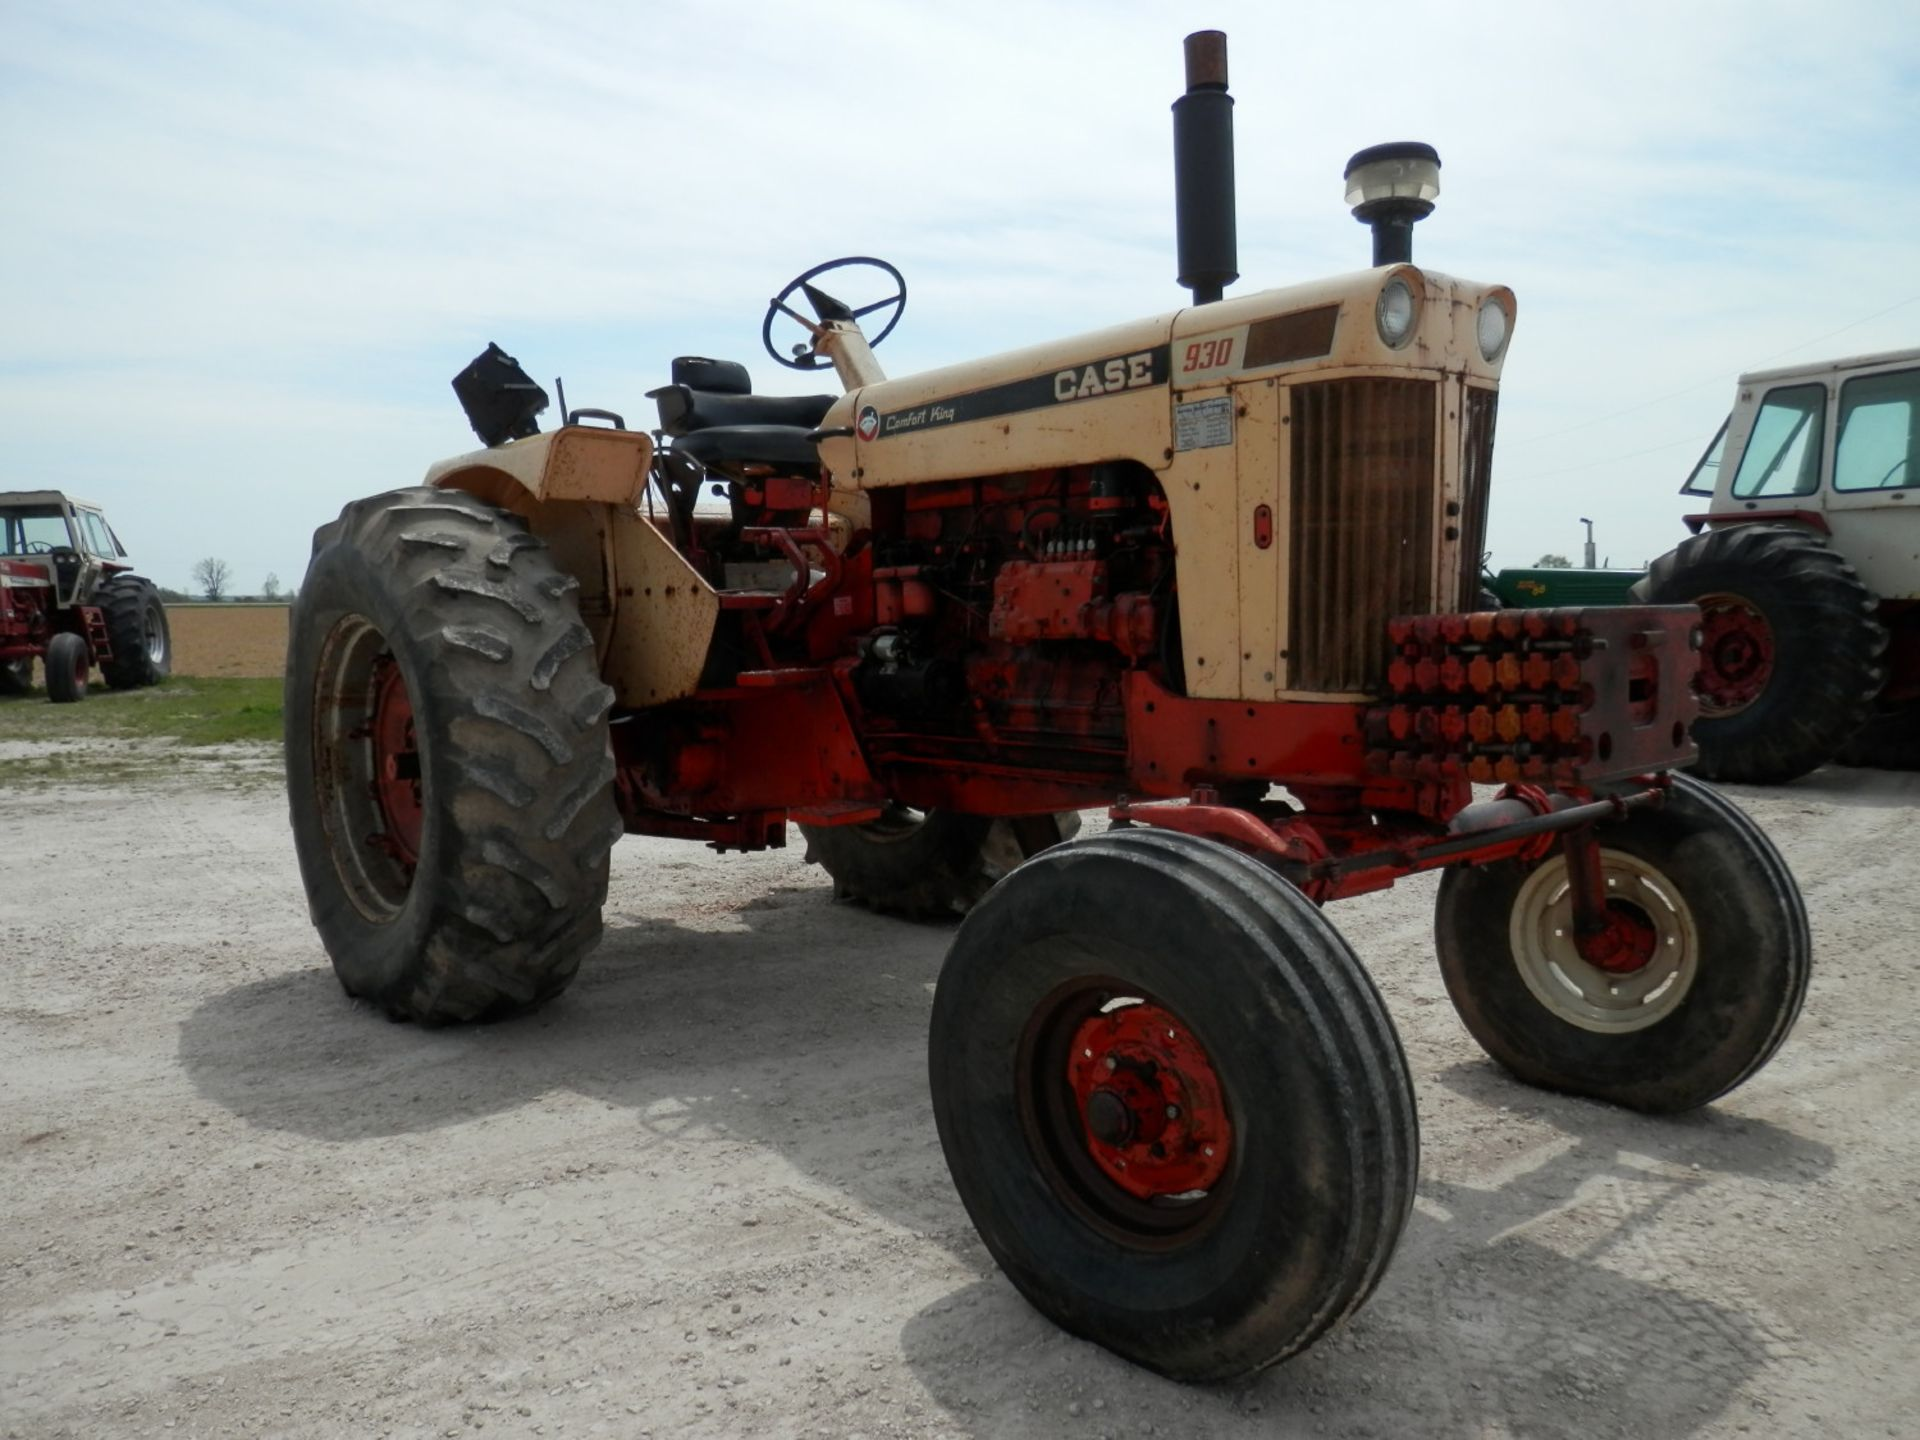 CASE 930 COMFORT KING TRACTOR - Image 2 of 9